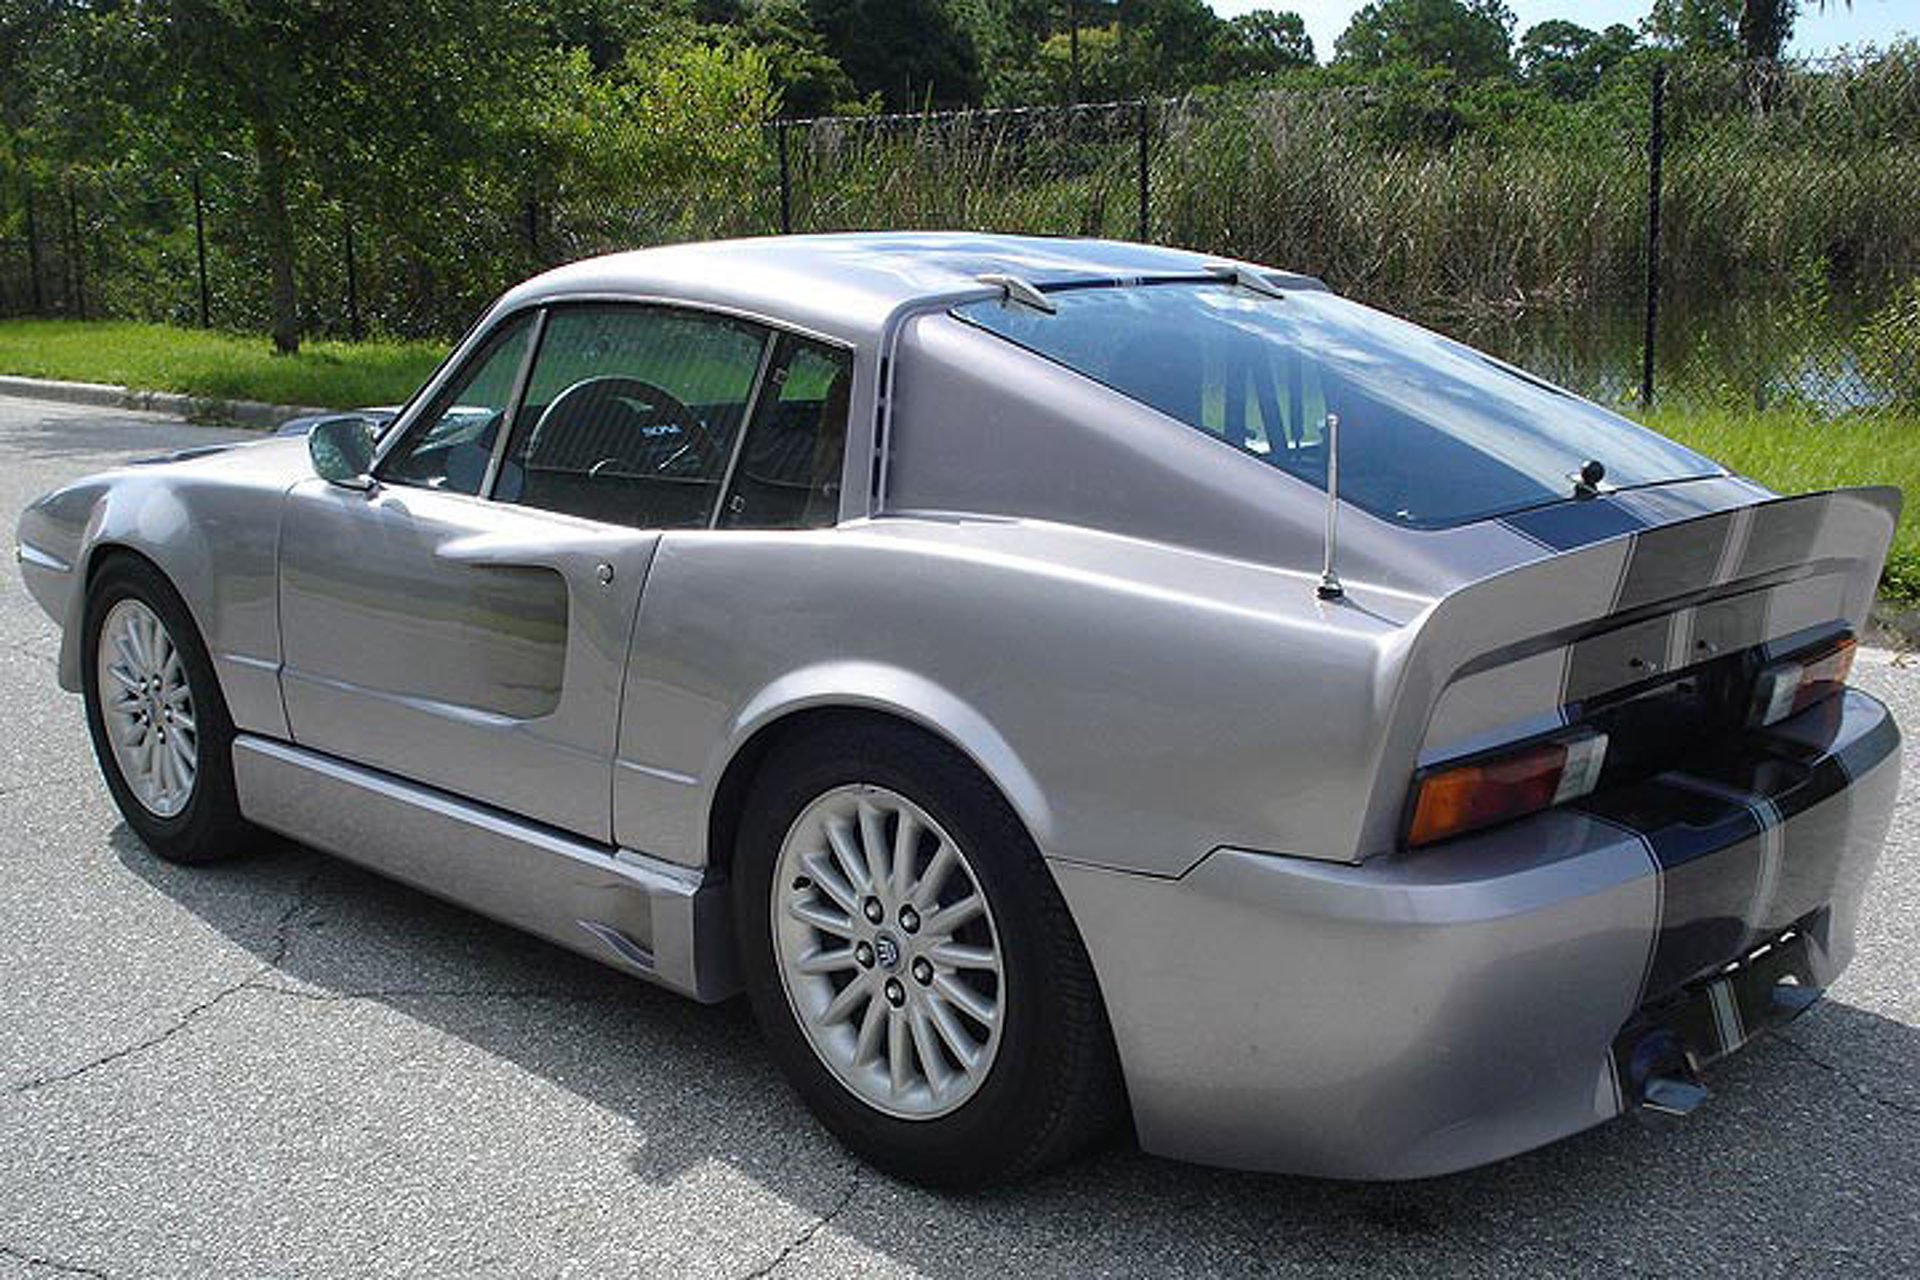 """This Saab Really, Really Wants to Be an """"Eleanor"""" Ford Mustang"""